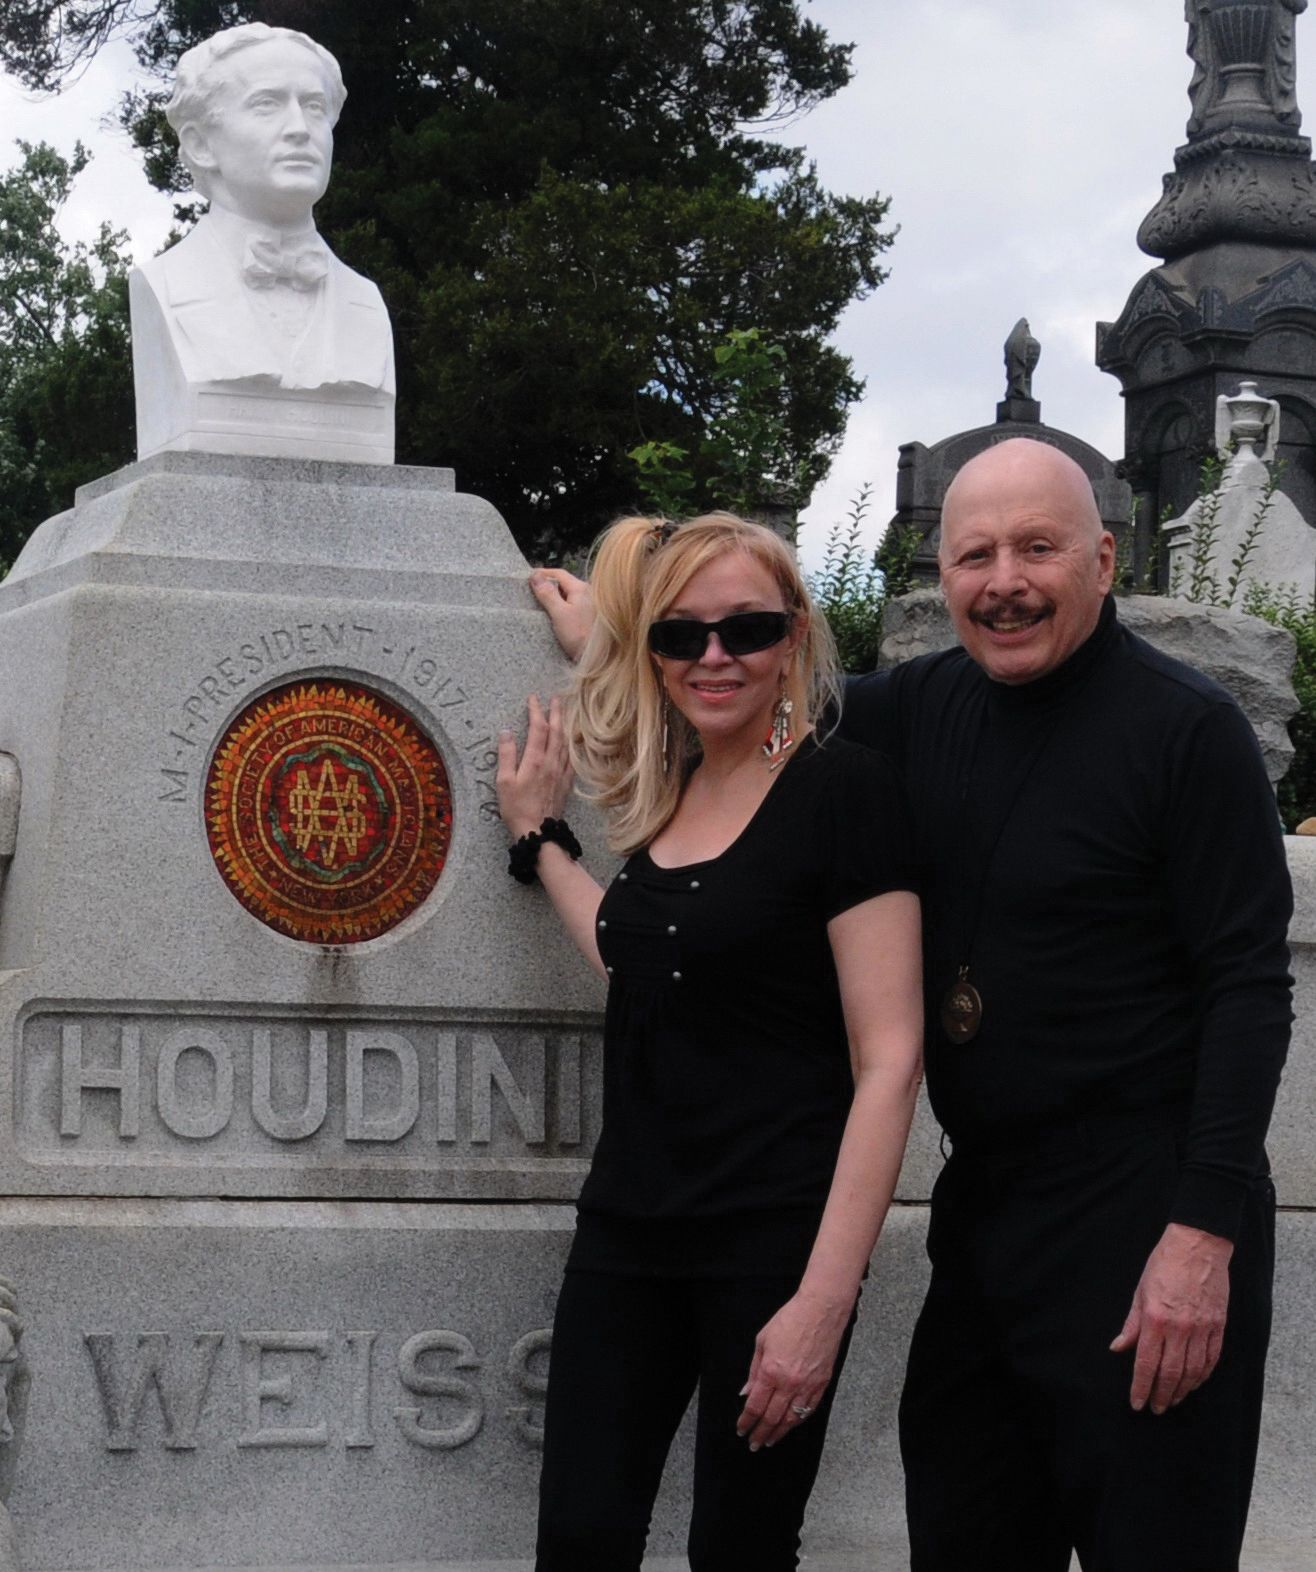 Dietrich-Dick Brookz Replaced Vandalized Bust At Houdini Grave. Cost $10,000